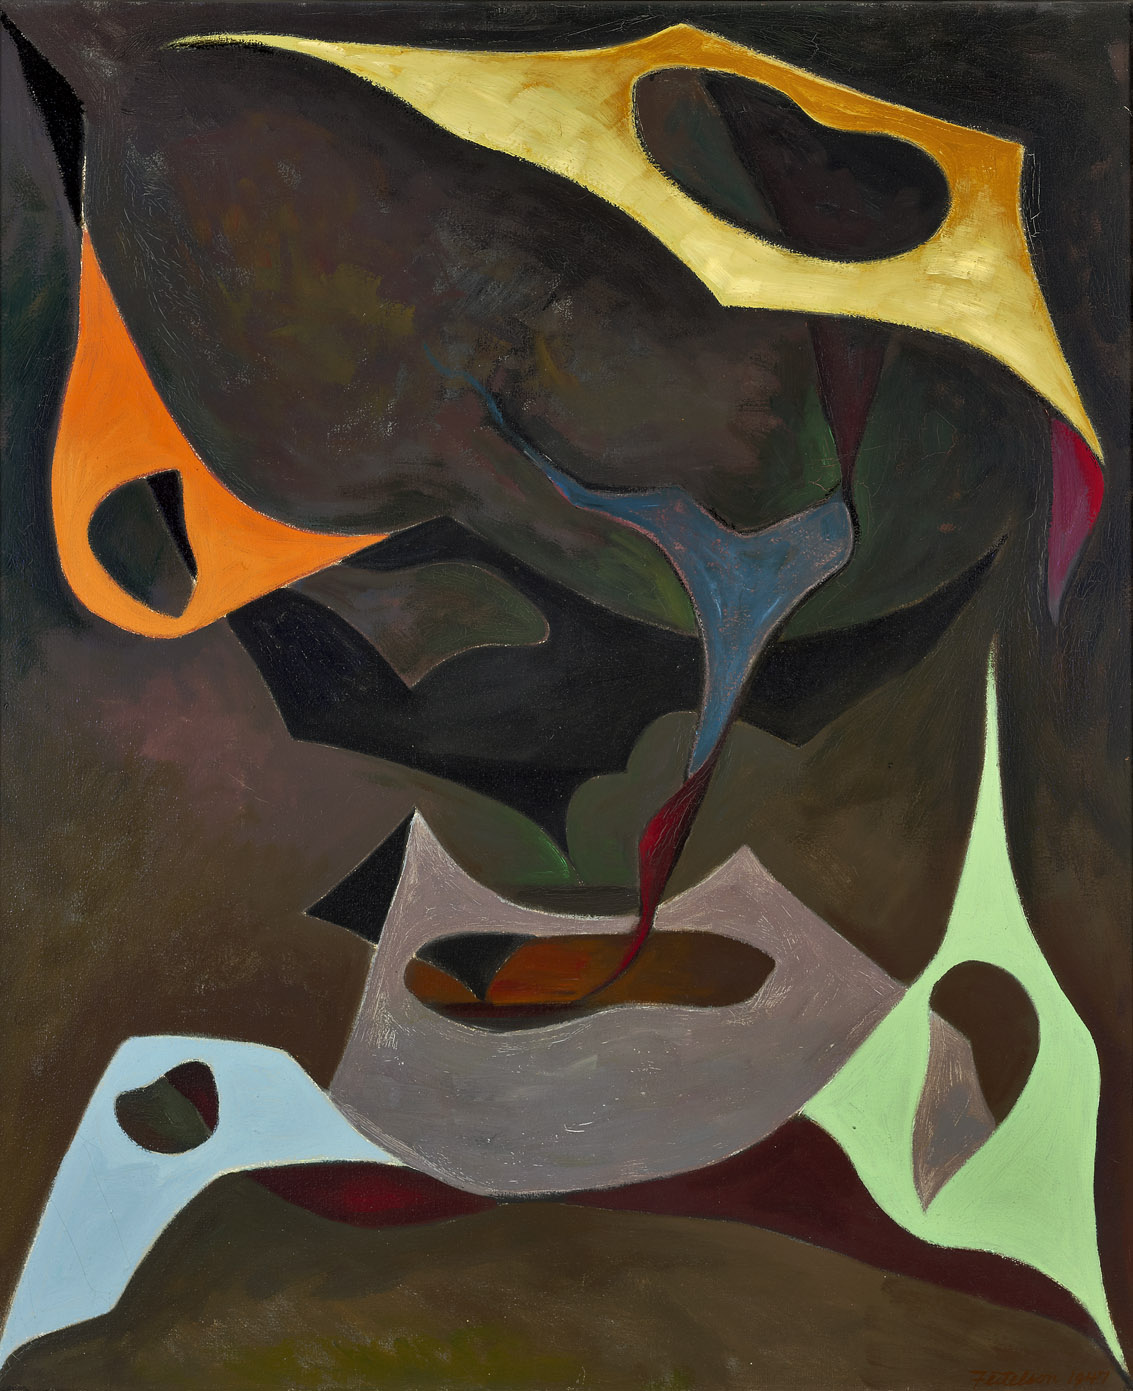 Magical Forms , 1947  oil on canvas 36 x 30 inches; 91.4 x 76.2 centimeters